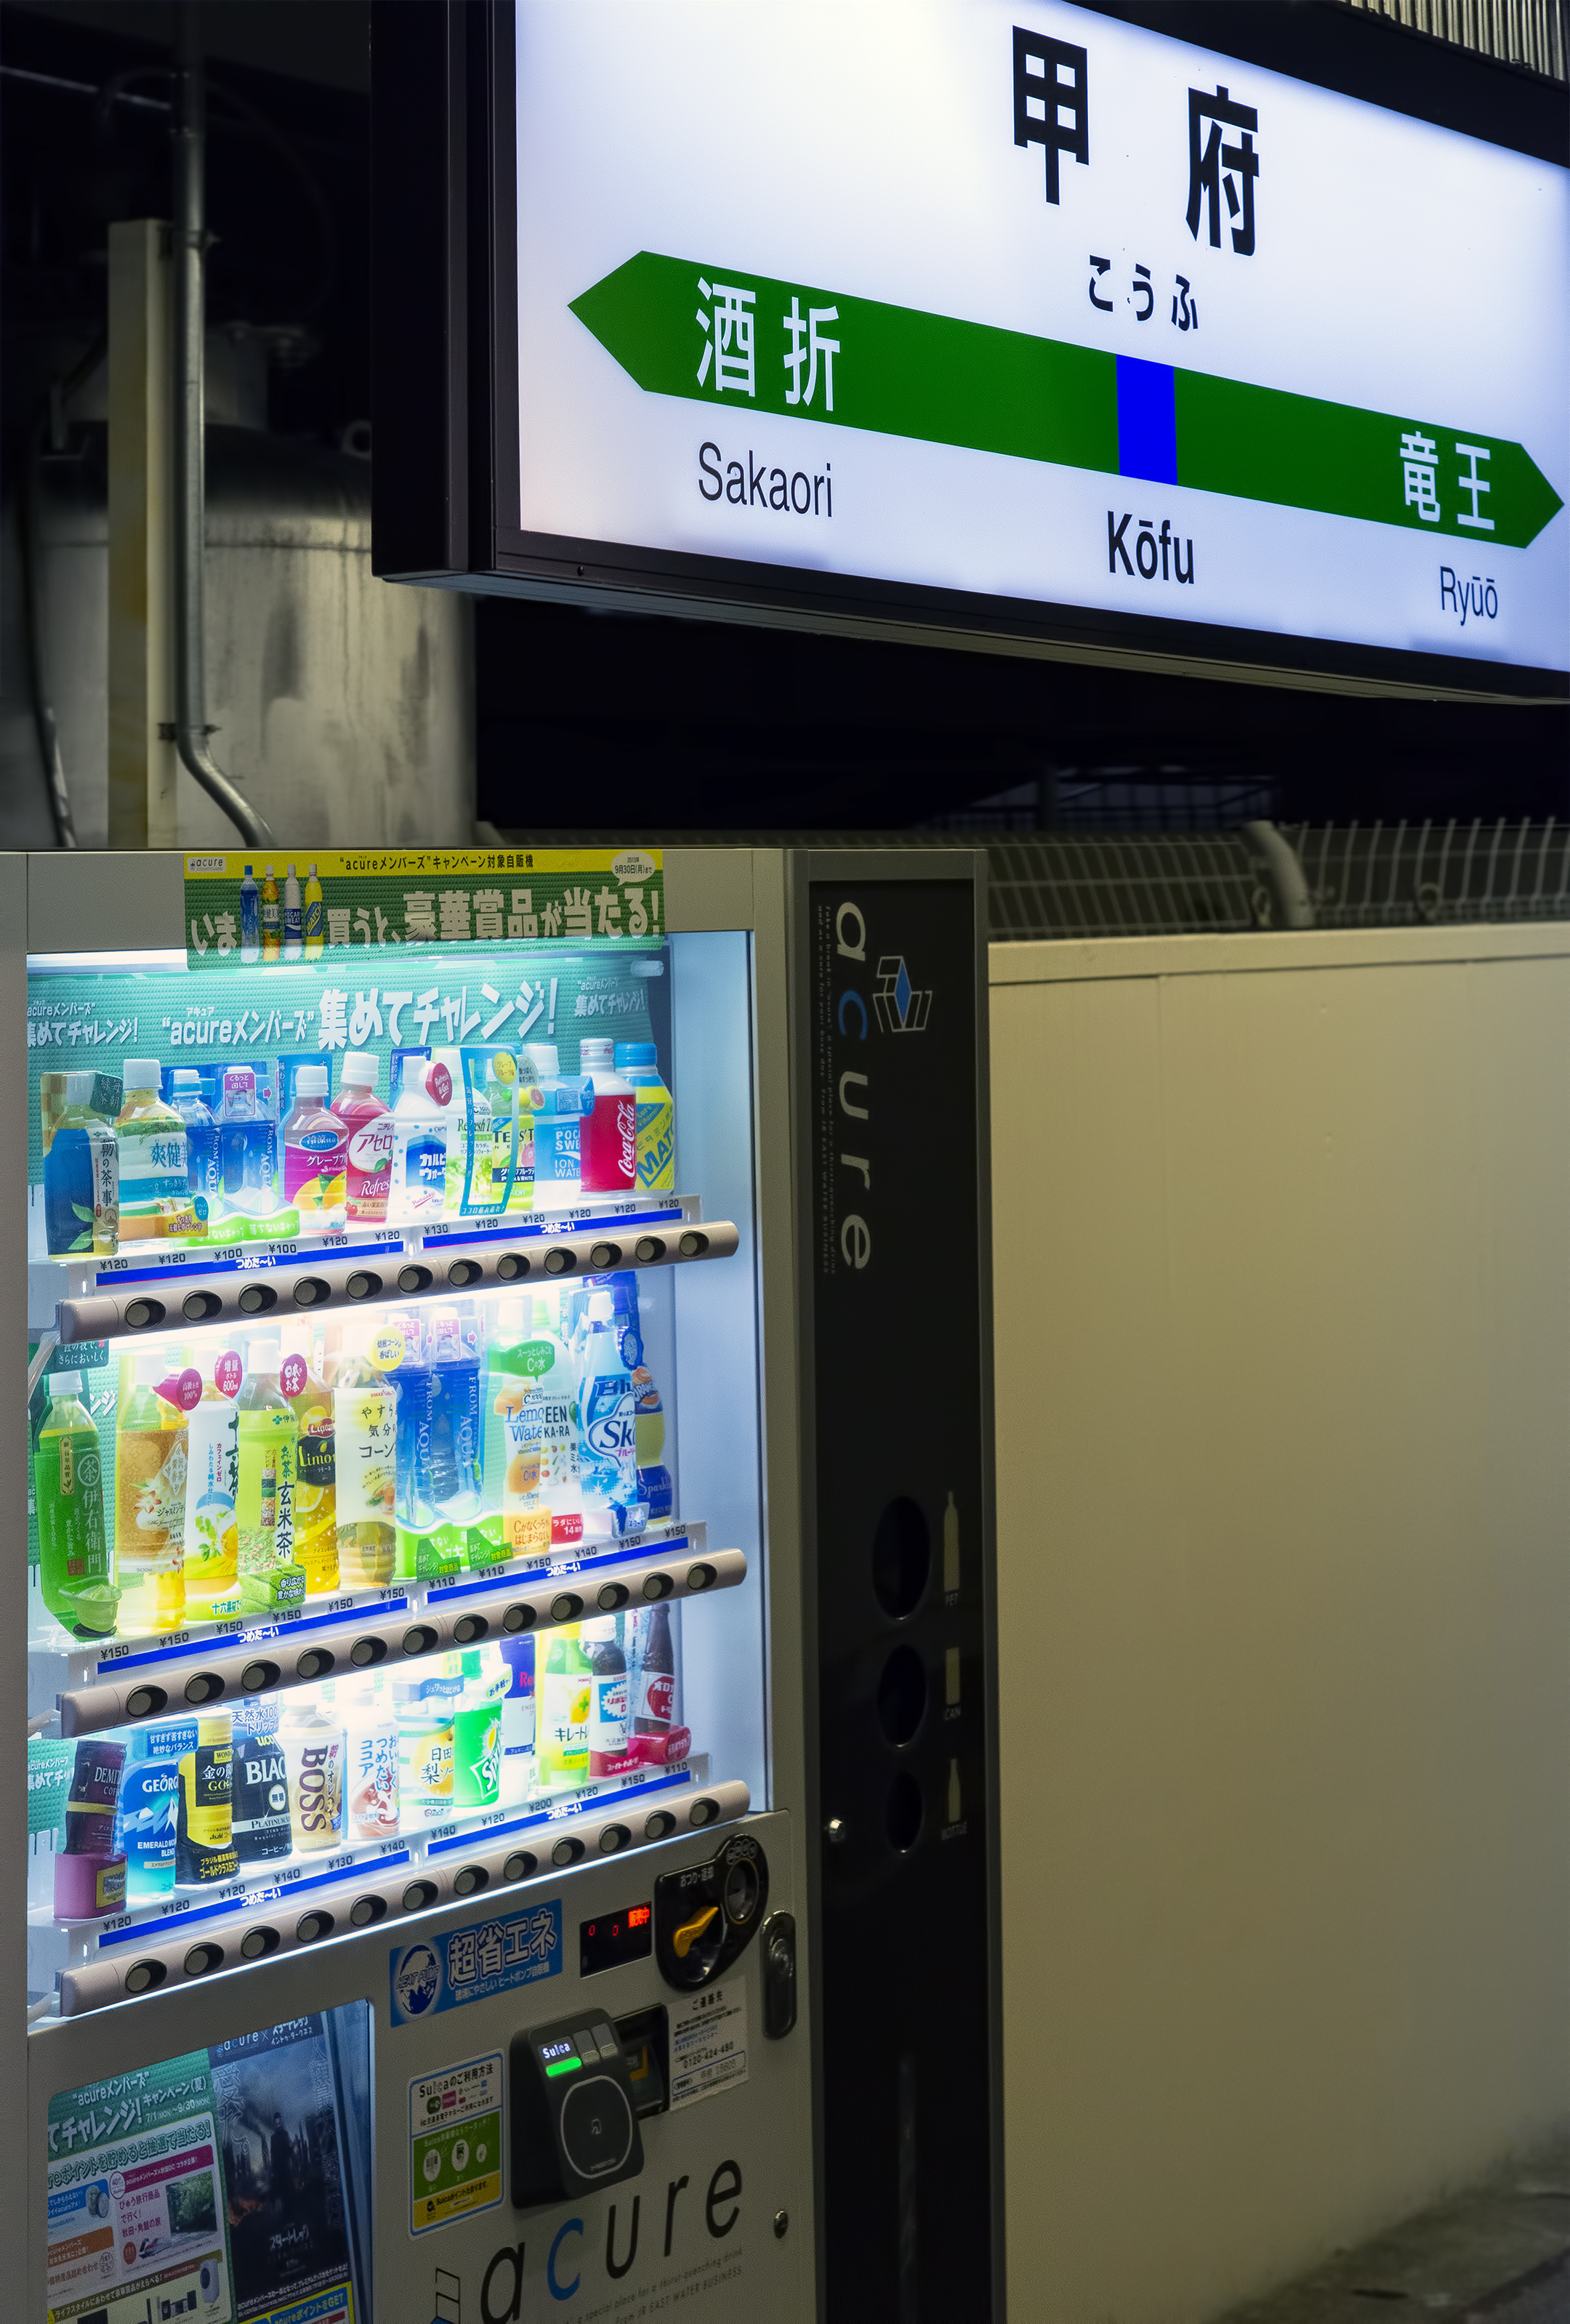 kofu station vending machine